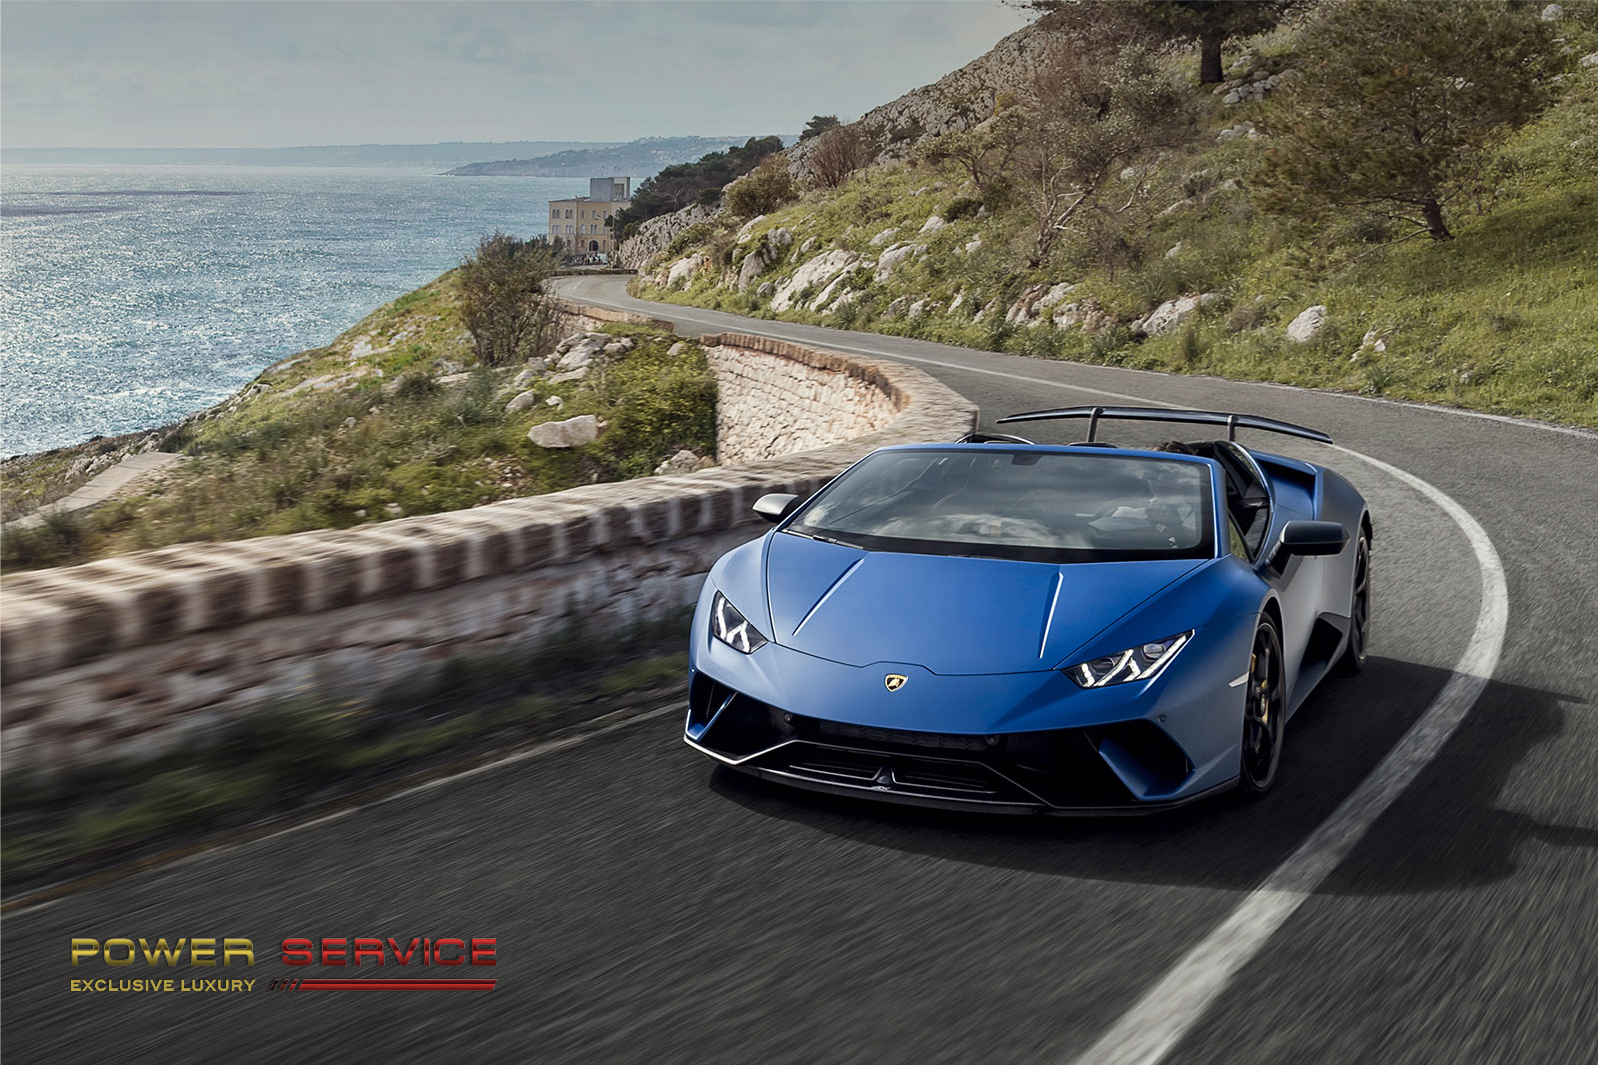 A trip in Milan and around Como Lake hiring a Lamborghini - Power Service Luxury Car Hire